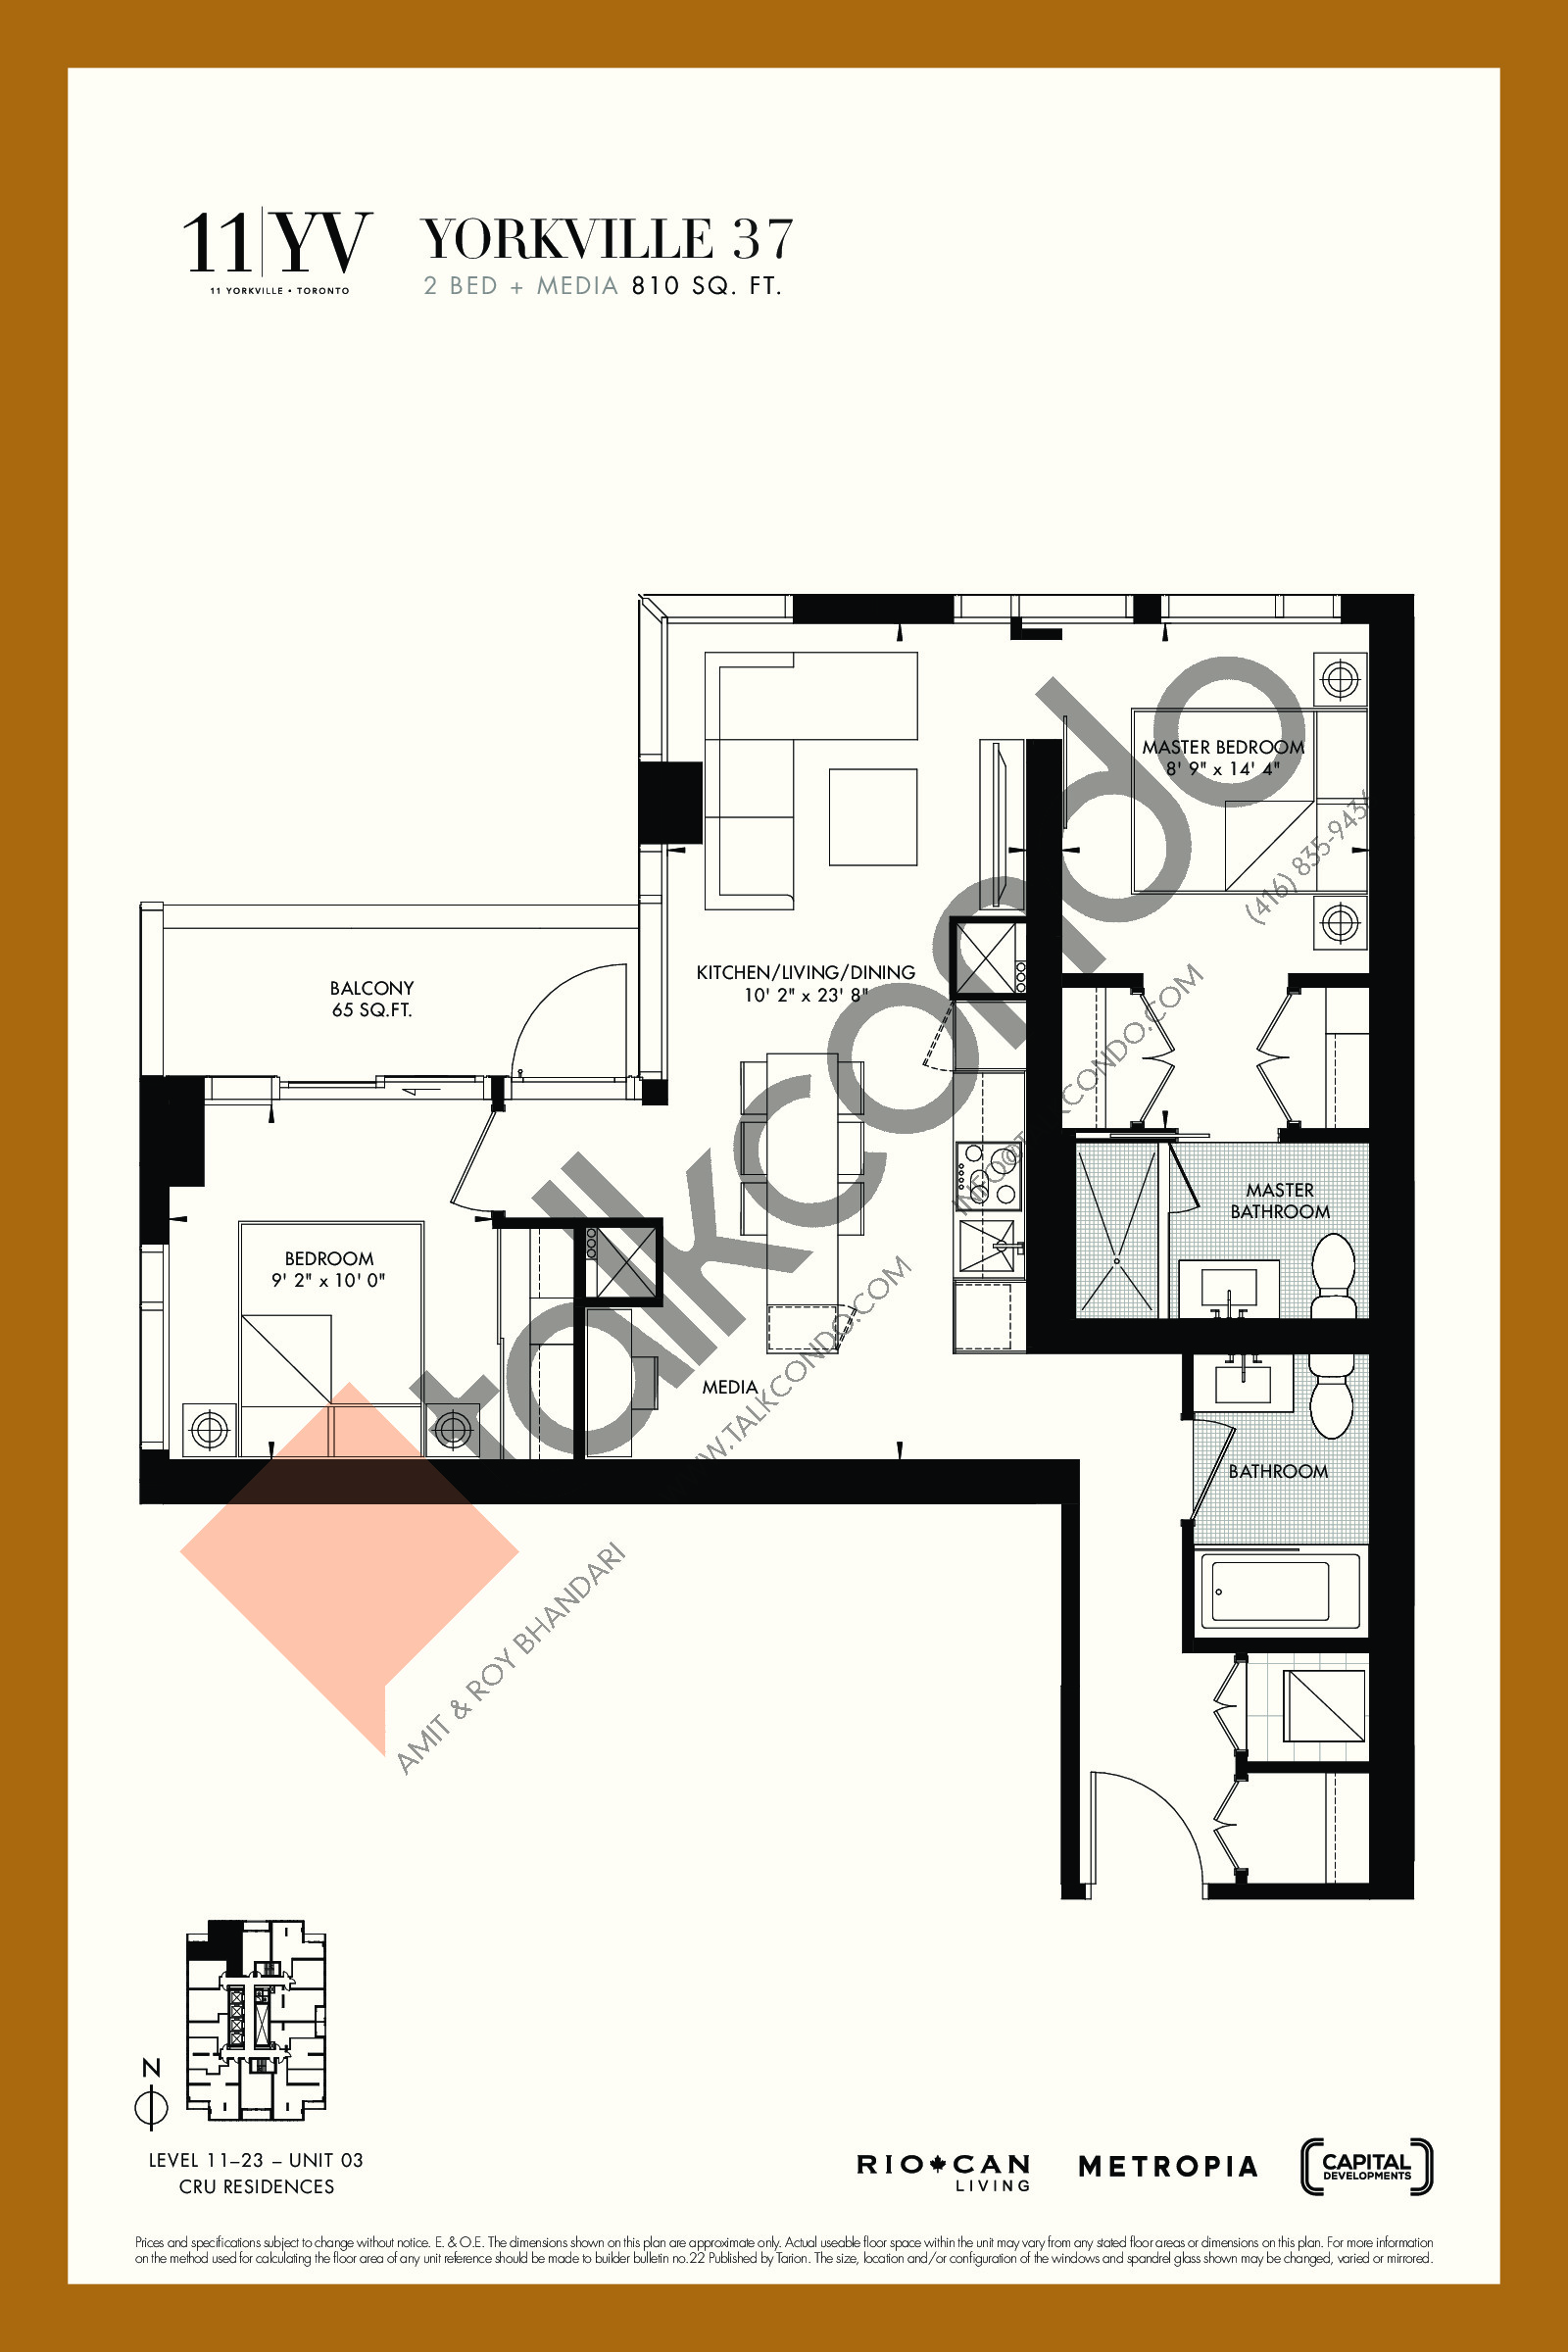 Yorkville 37 Floor Plan at 11YV Condos - 810 sq.ft